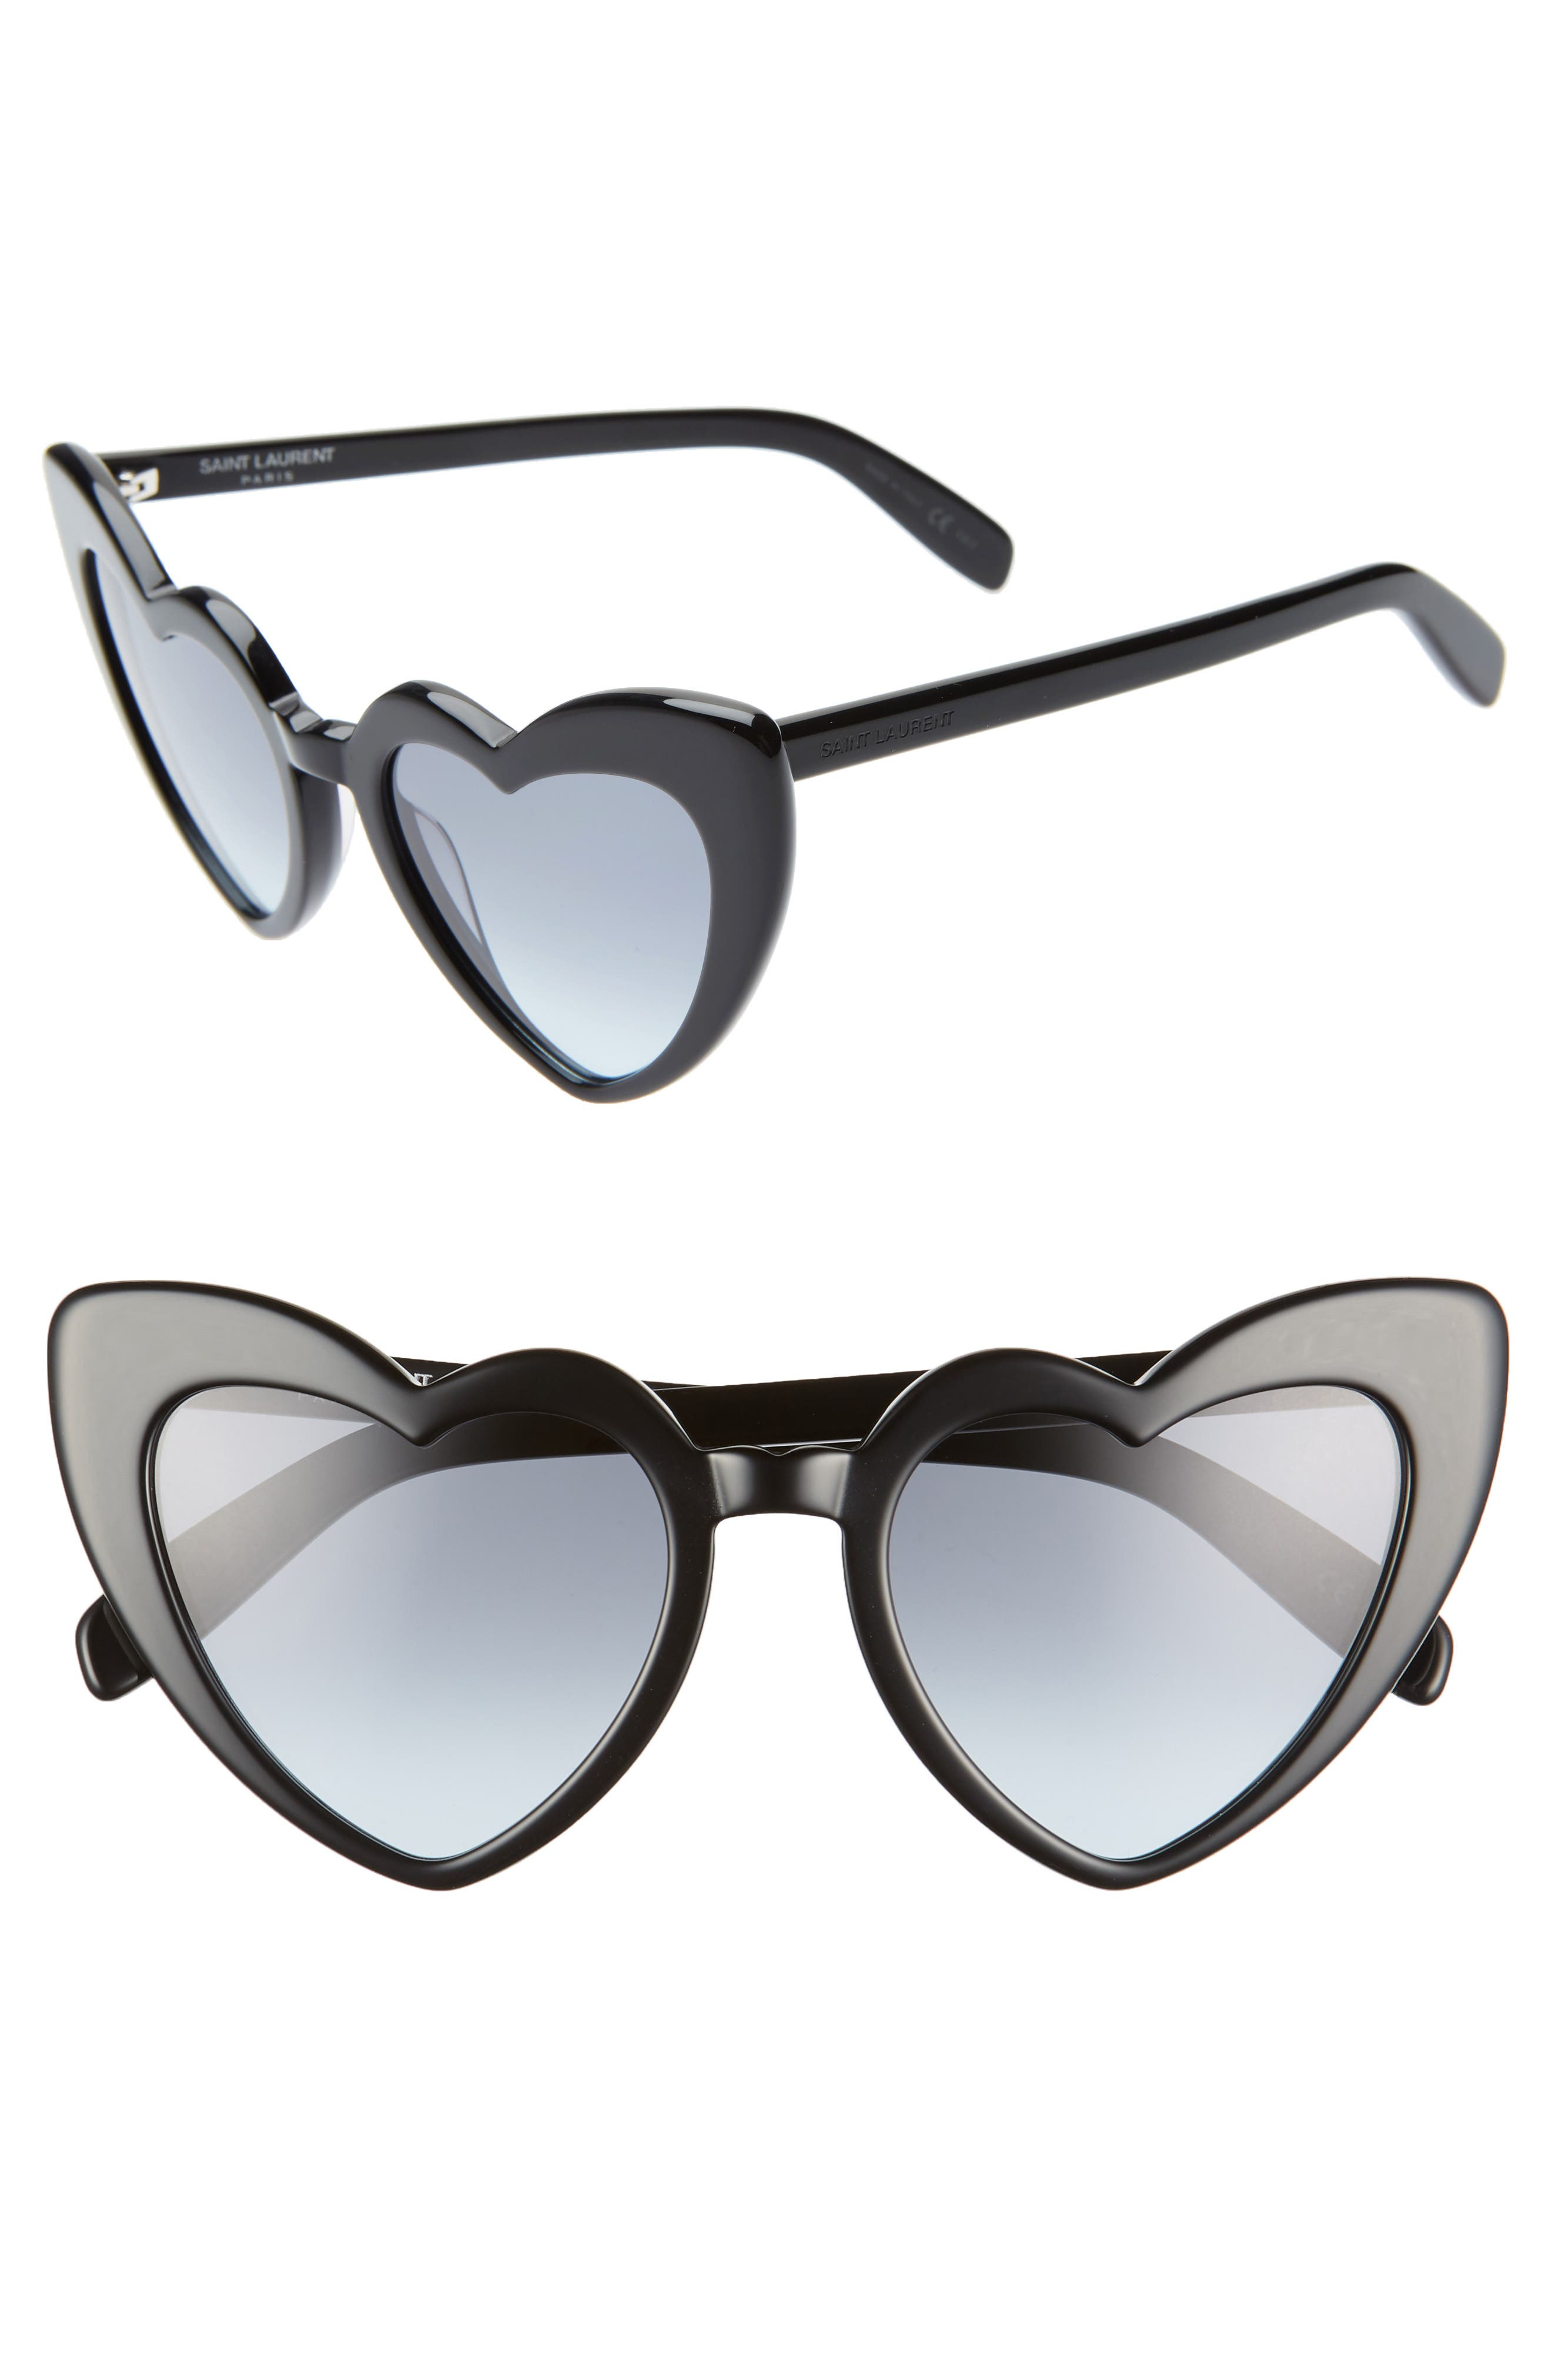 7bdf257de039c Saint Laurent Sunglasses